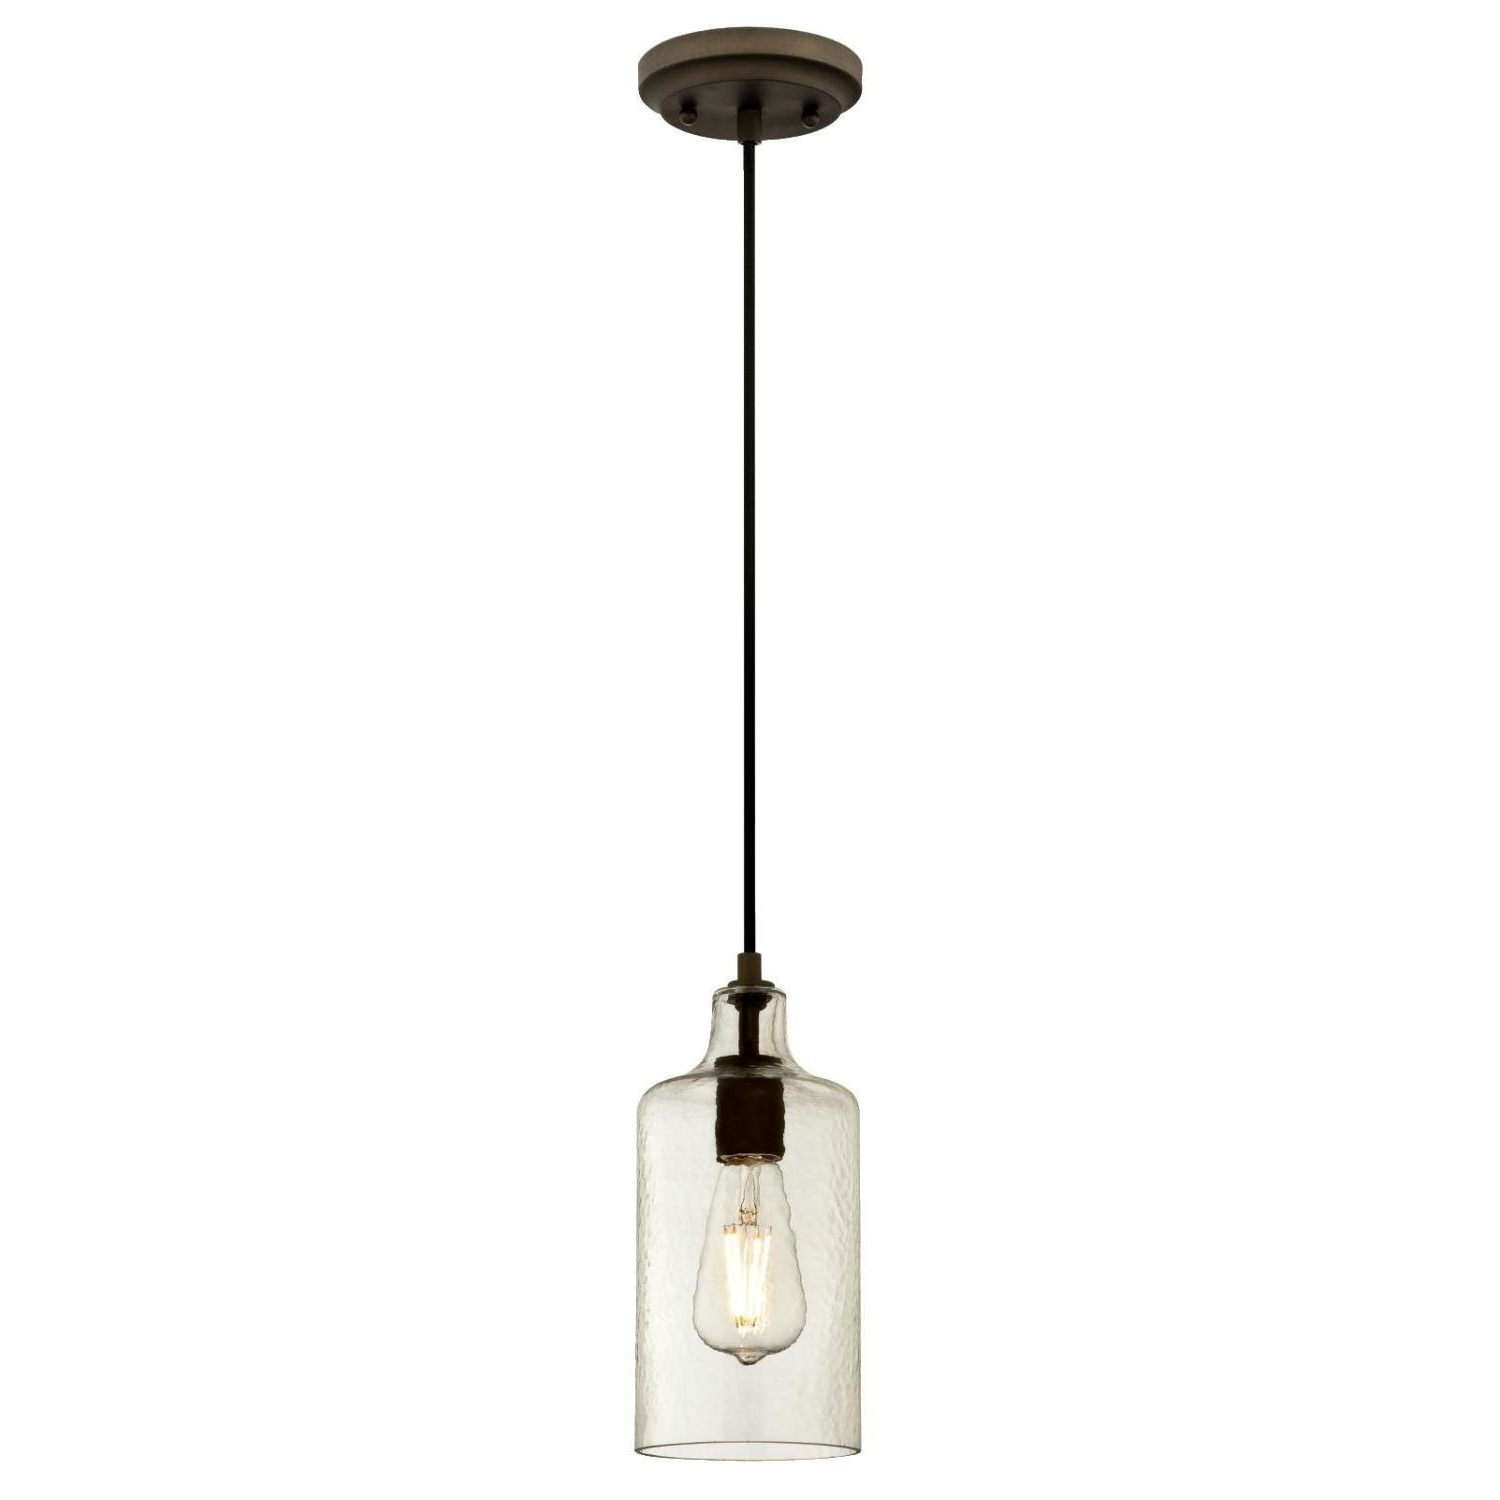 2020 Jayce 1 Light Cylinder Pendant In Jayce 1 Light Cylinder Pendants (View 1 of 20)